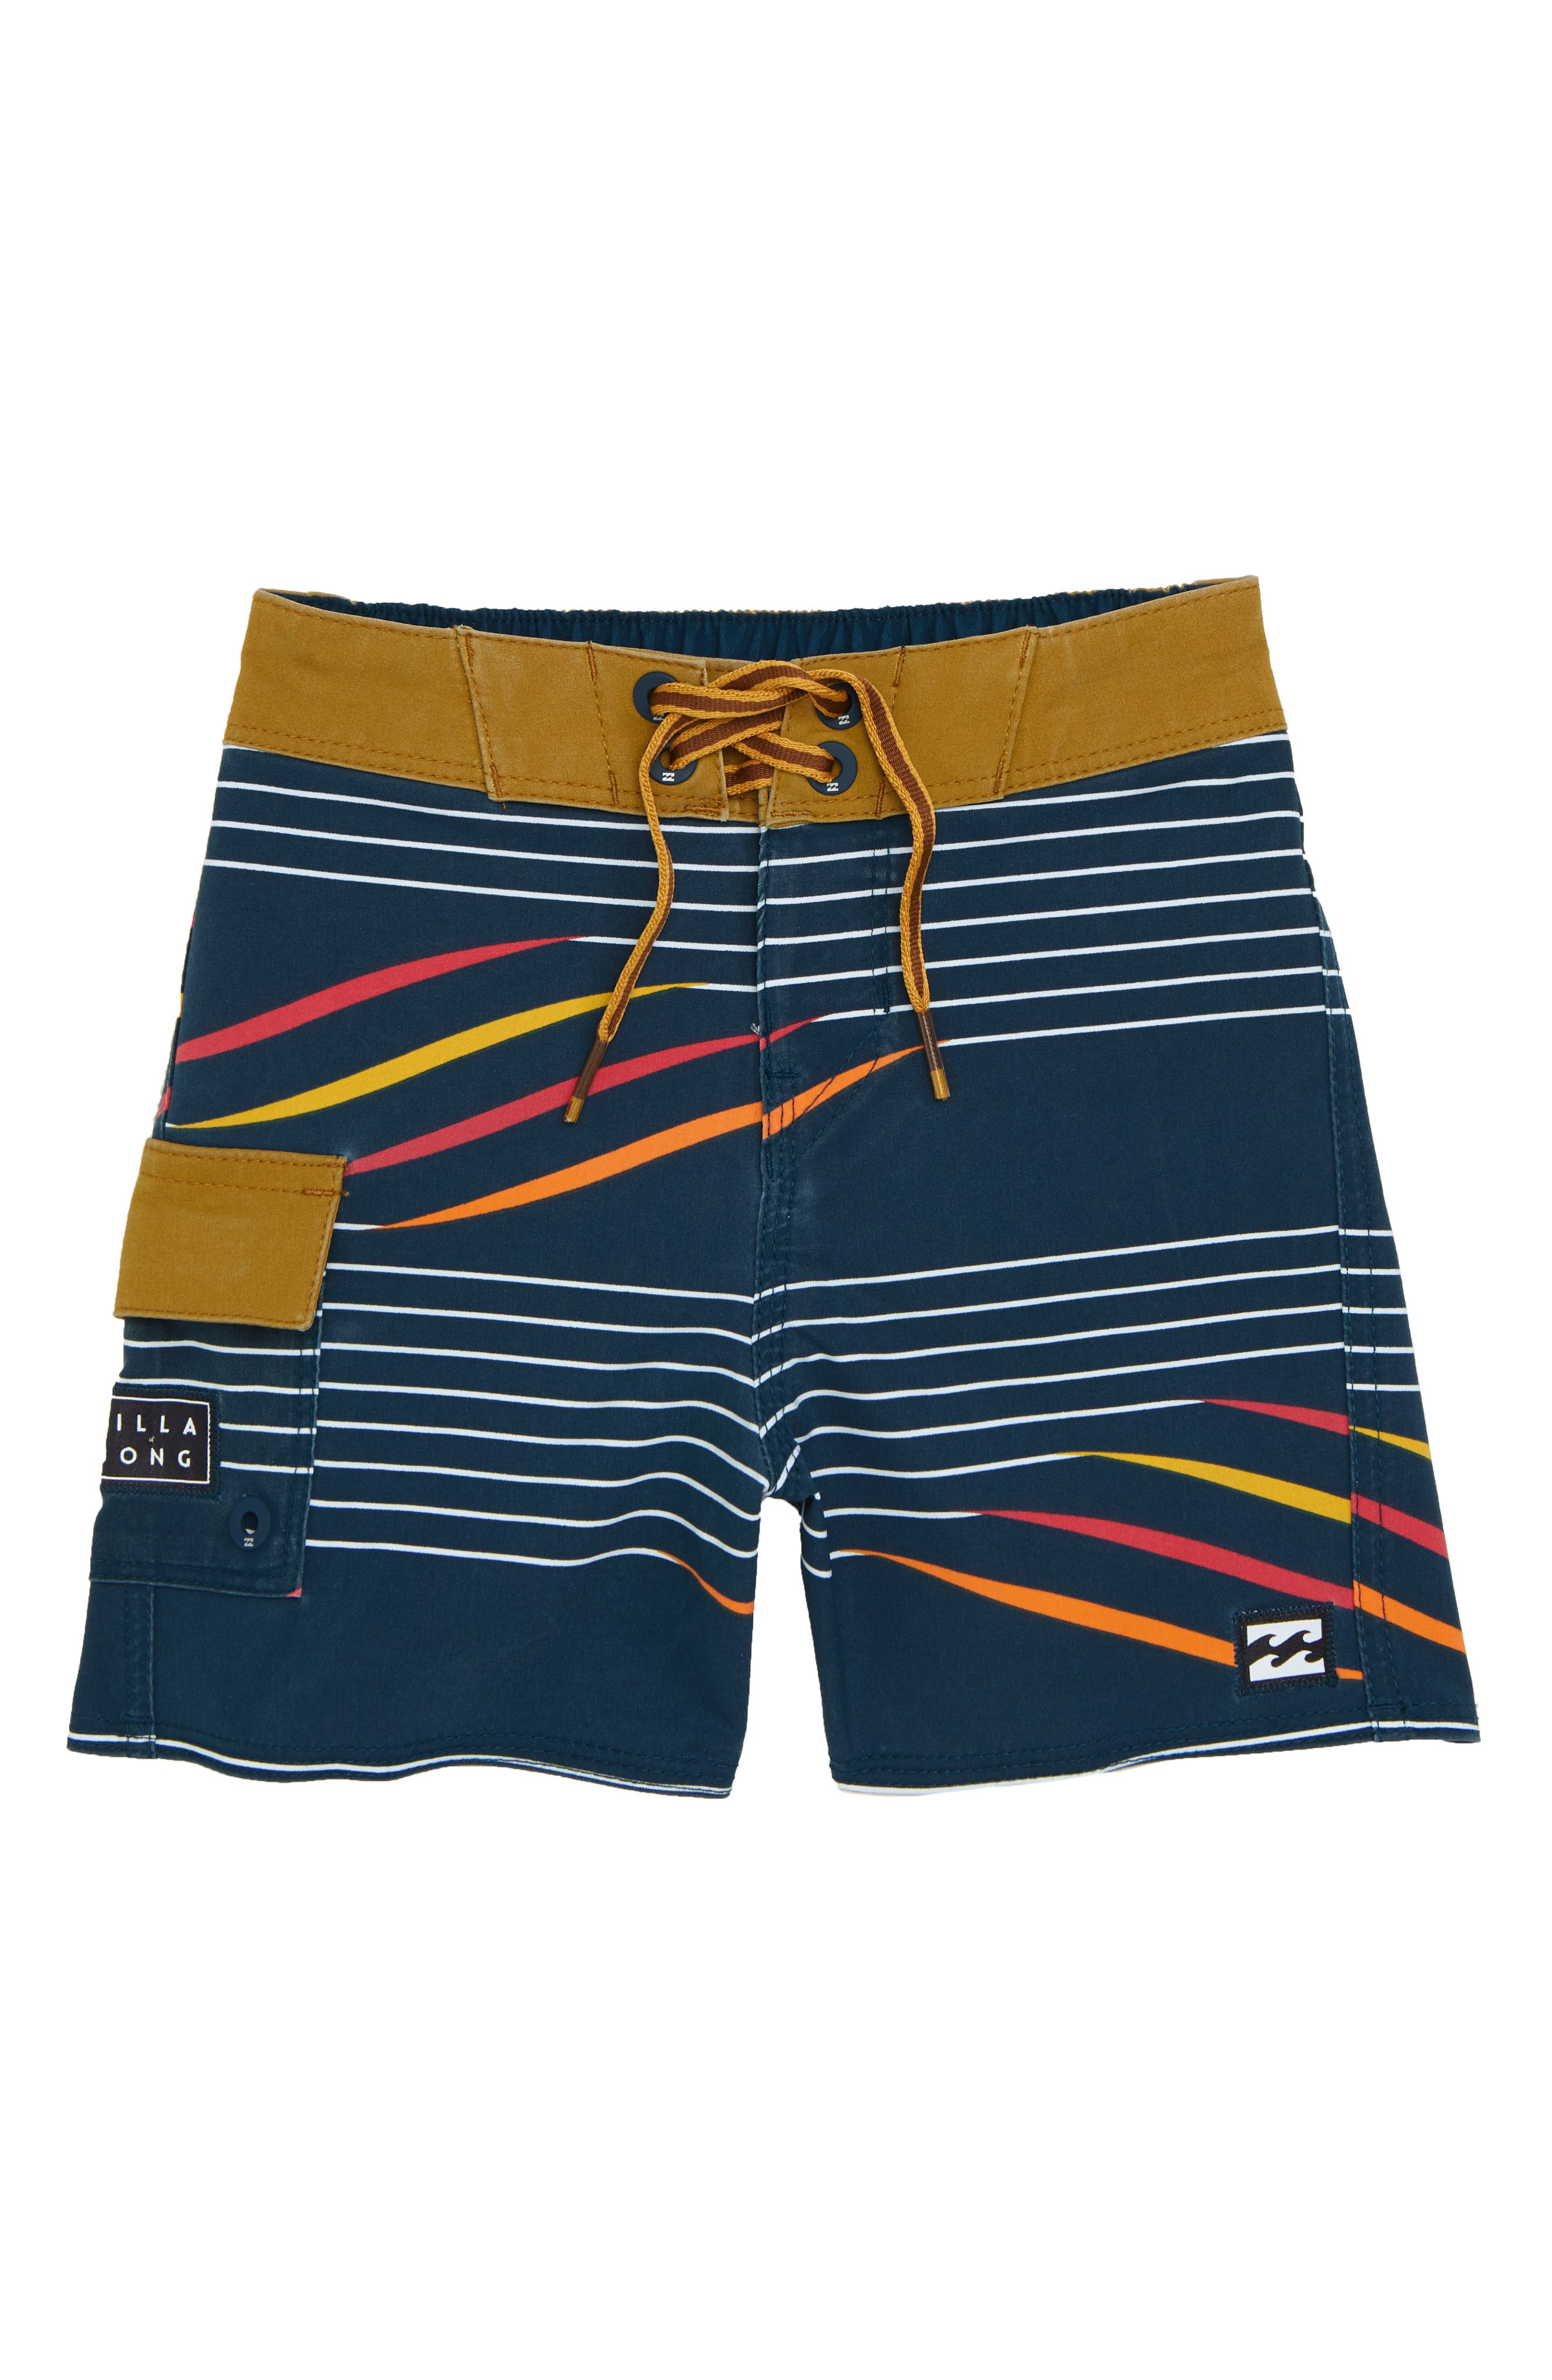 Sundays X Stripe Board Shorts,                         Main,                         color, NAVY